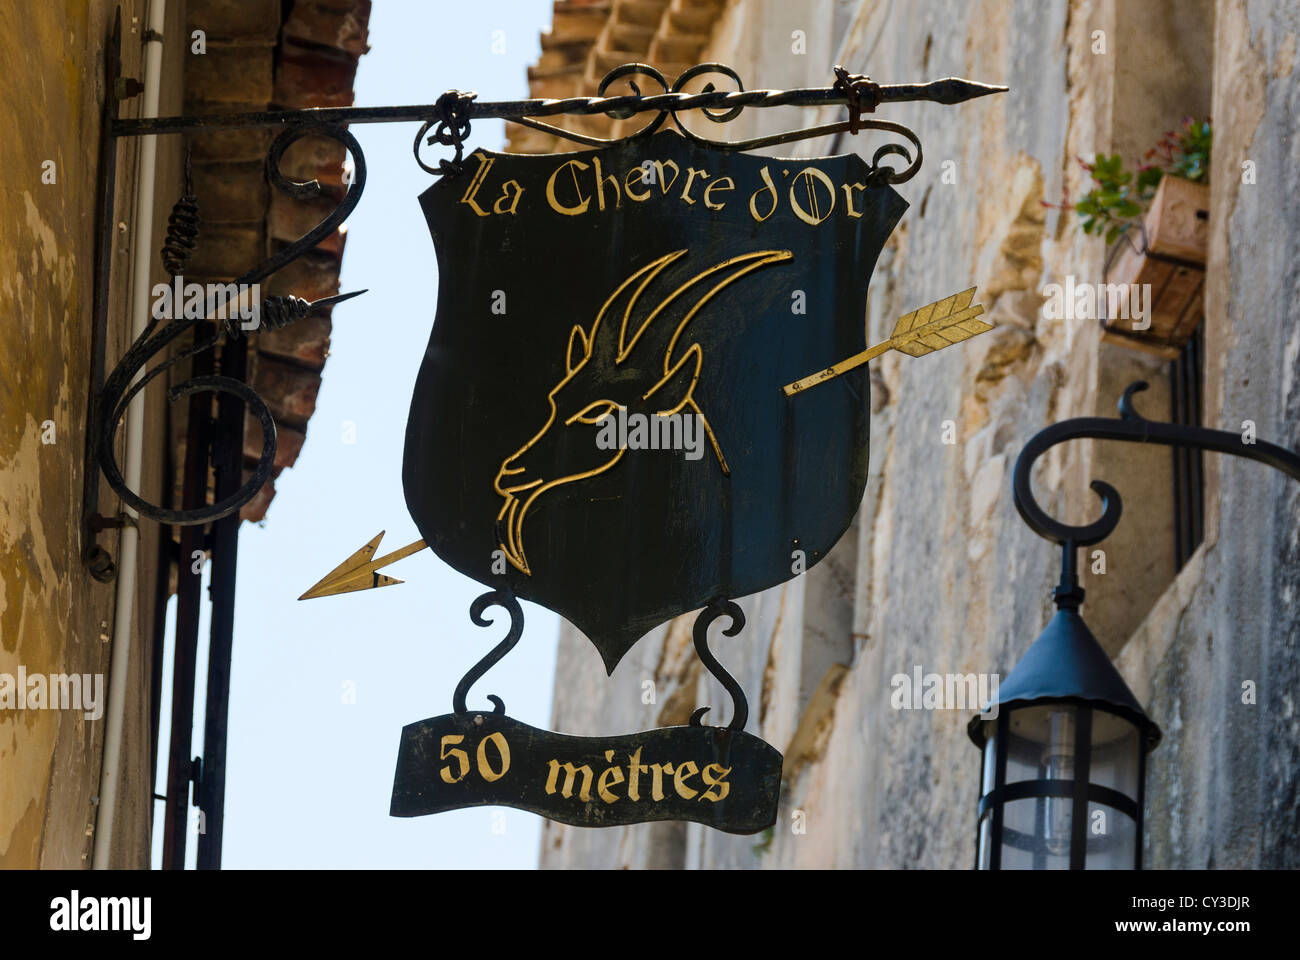 La Chevre D'or, Eze - Restaurant Reviews, Phone Number ...